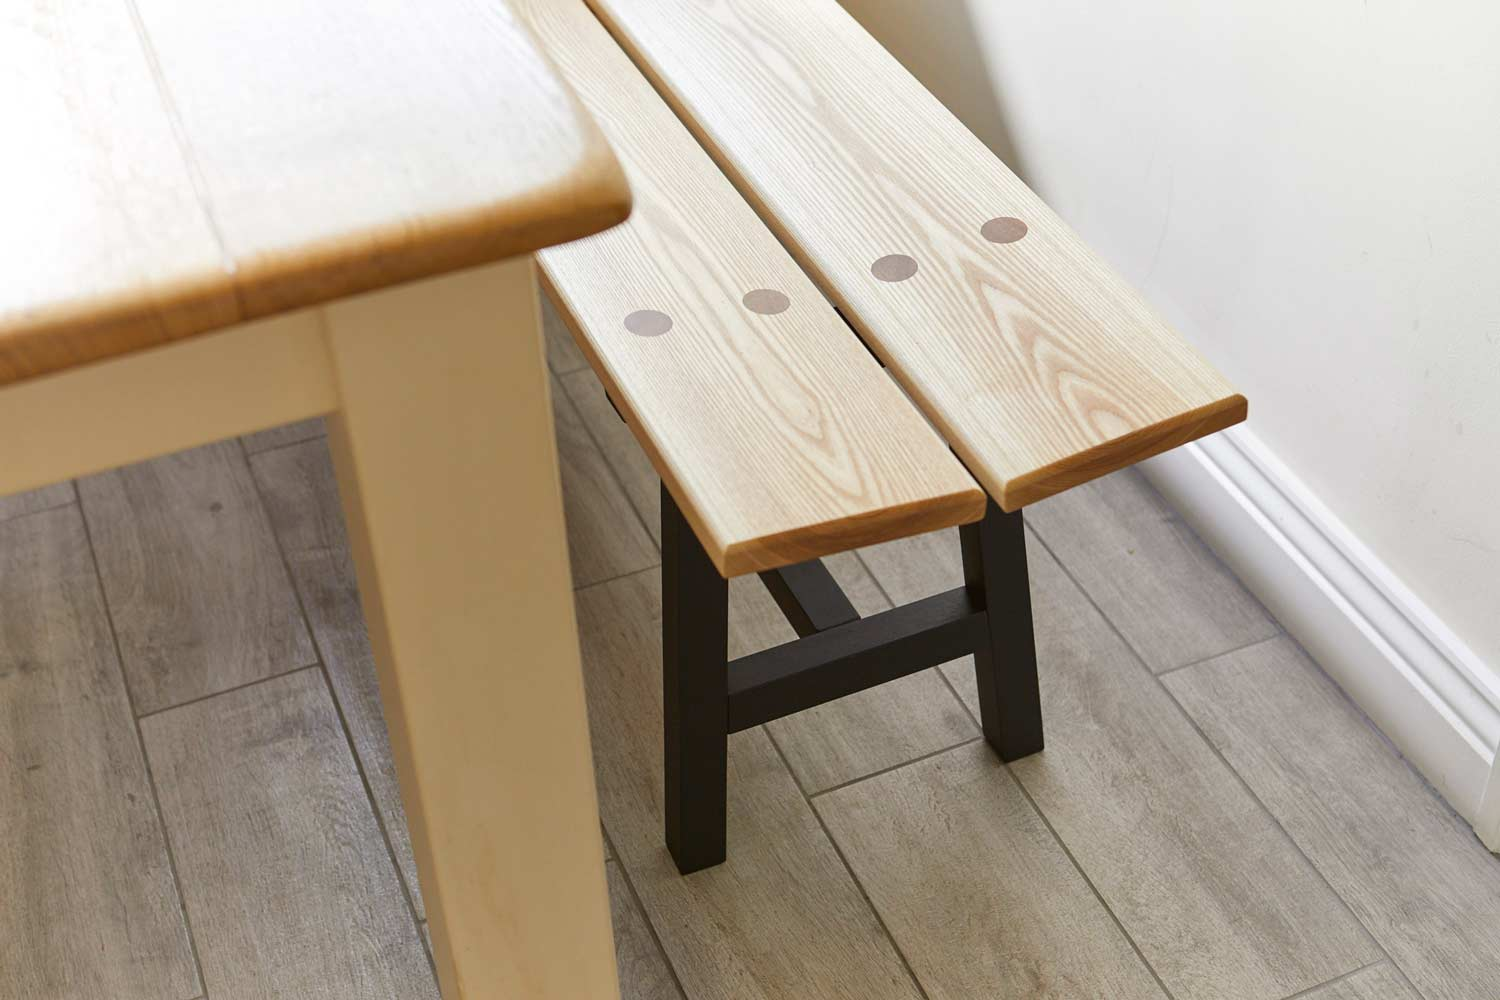 https://richardpearcewoodwork.com/wp-content/uploads/sites/6/2017/09/close-up-of-table-and-bench-richard-pearce-woodword-and-joinery-cornwall.jpg